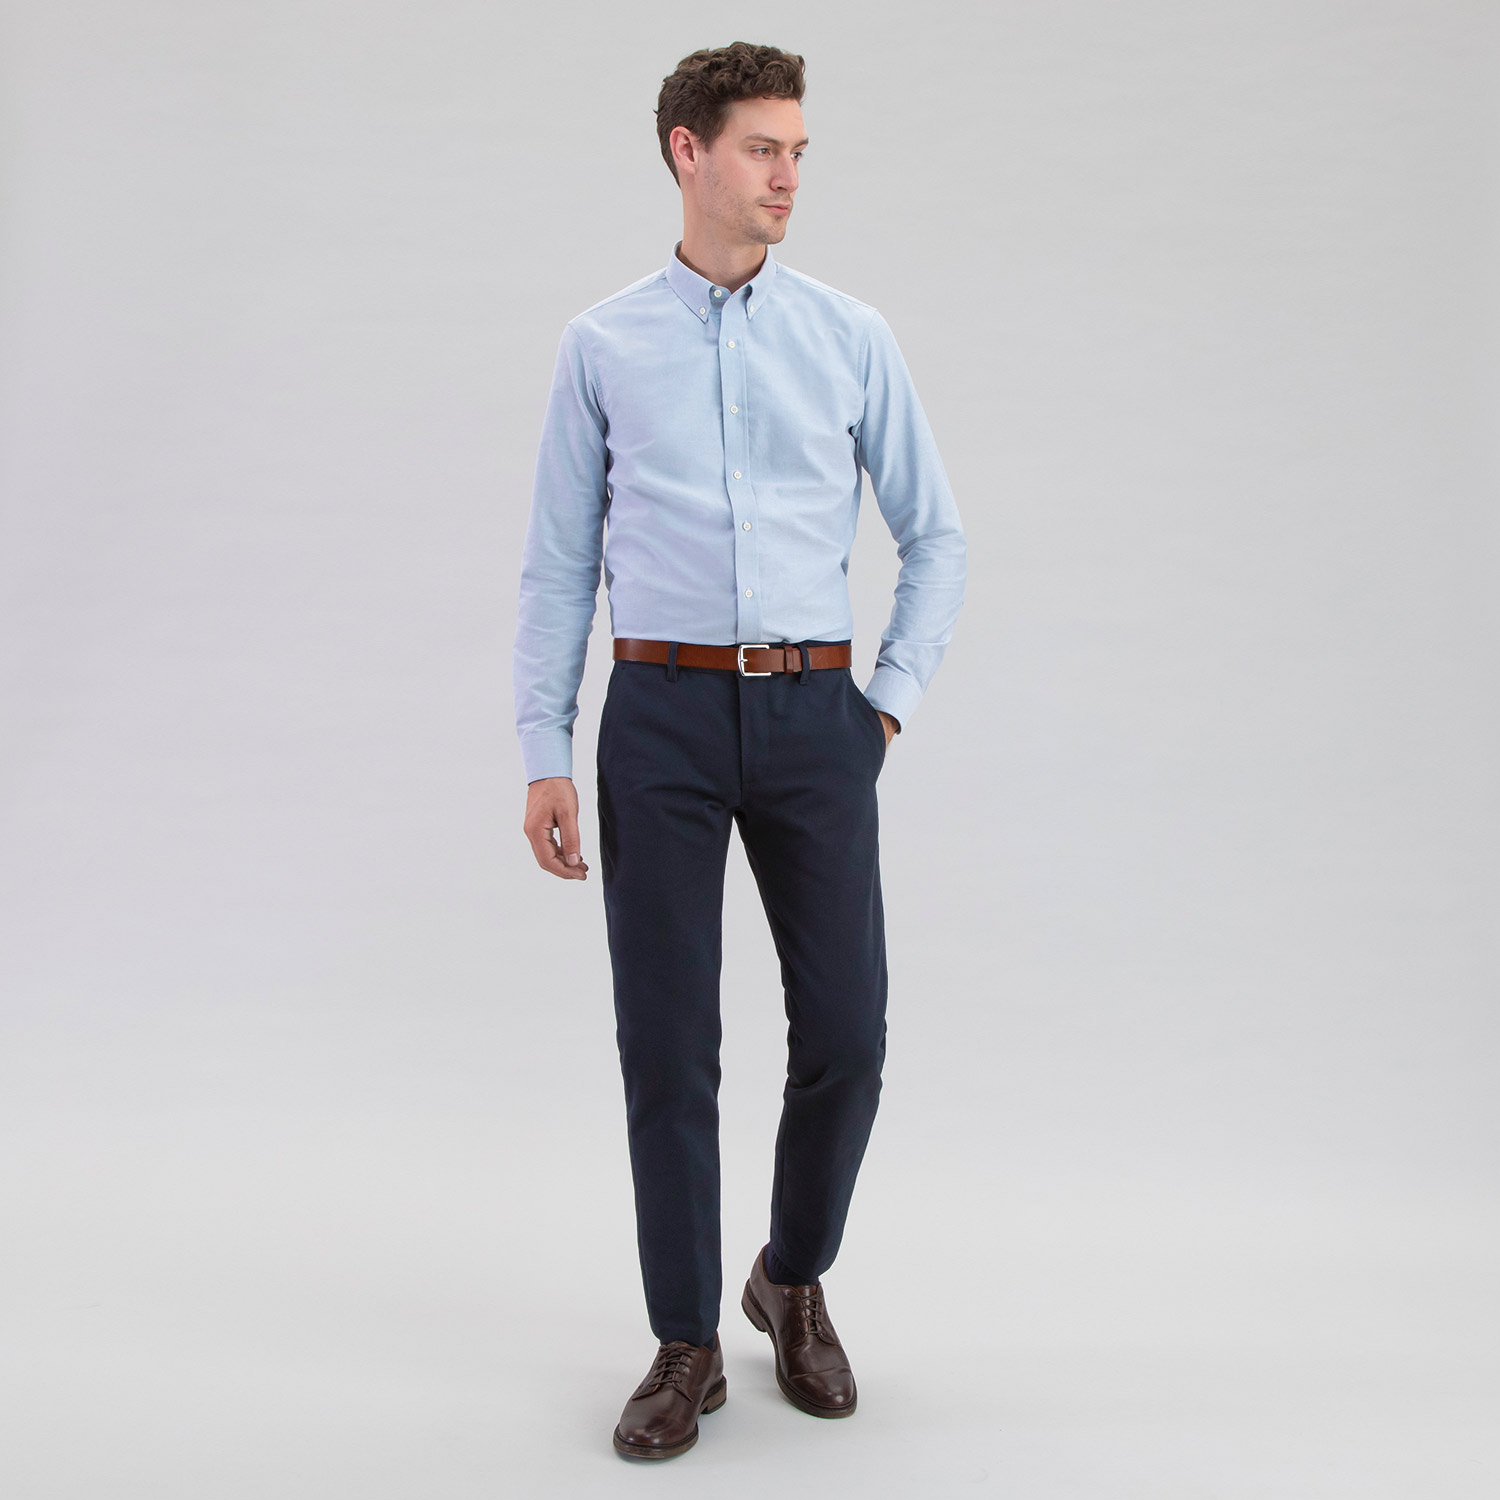 Jim Dandy Oxford Vintage Blue